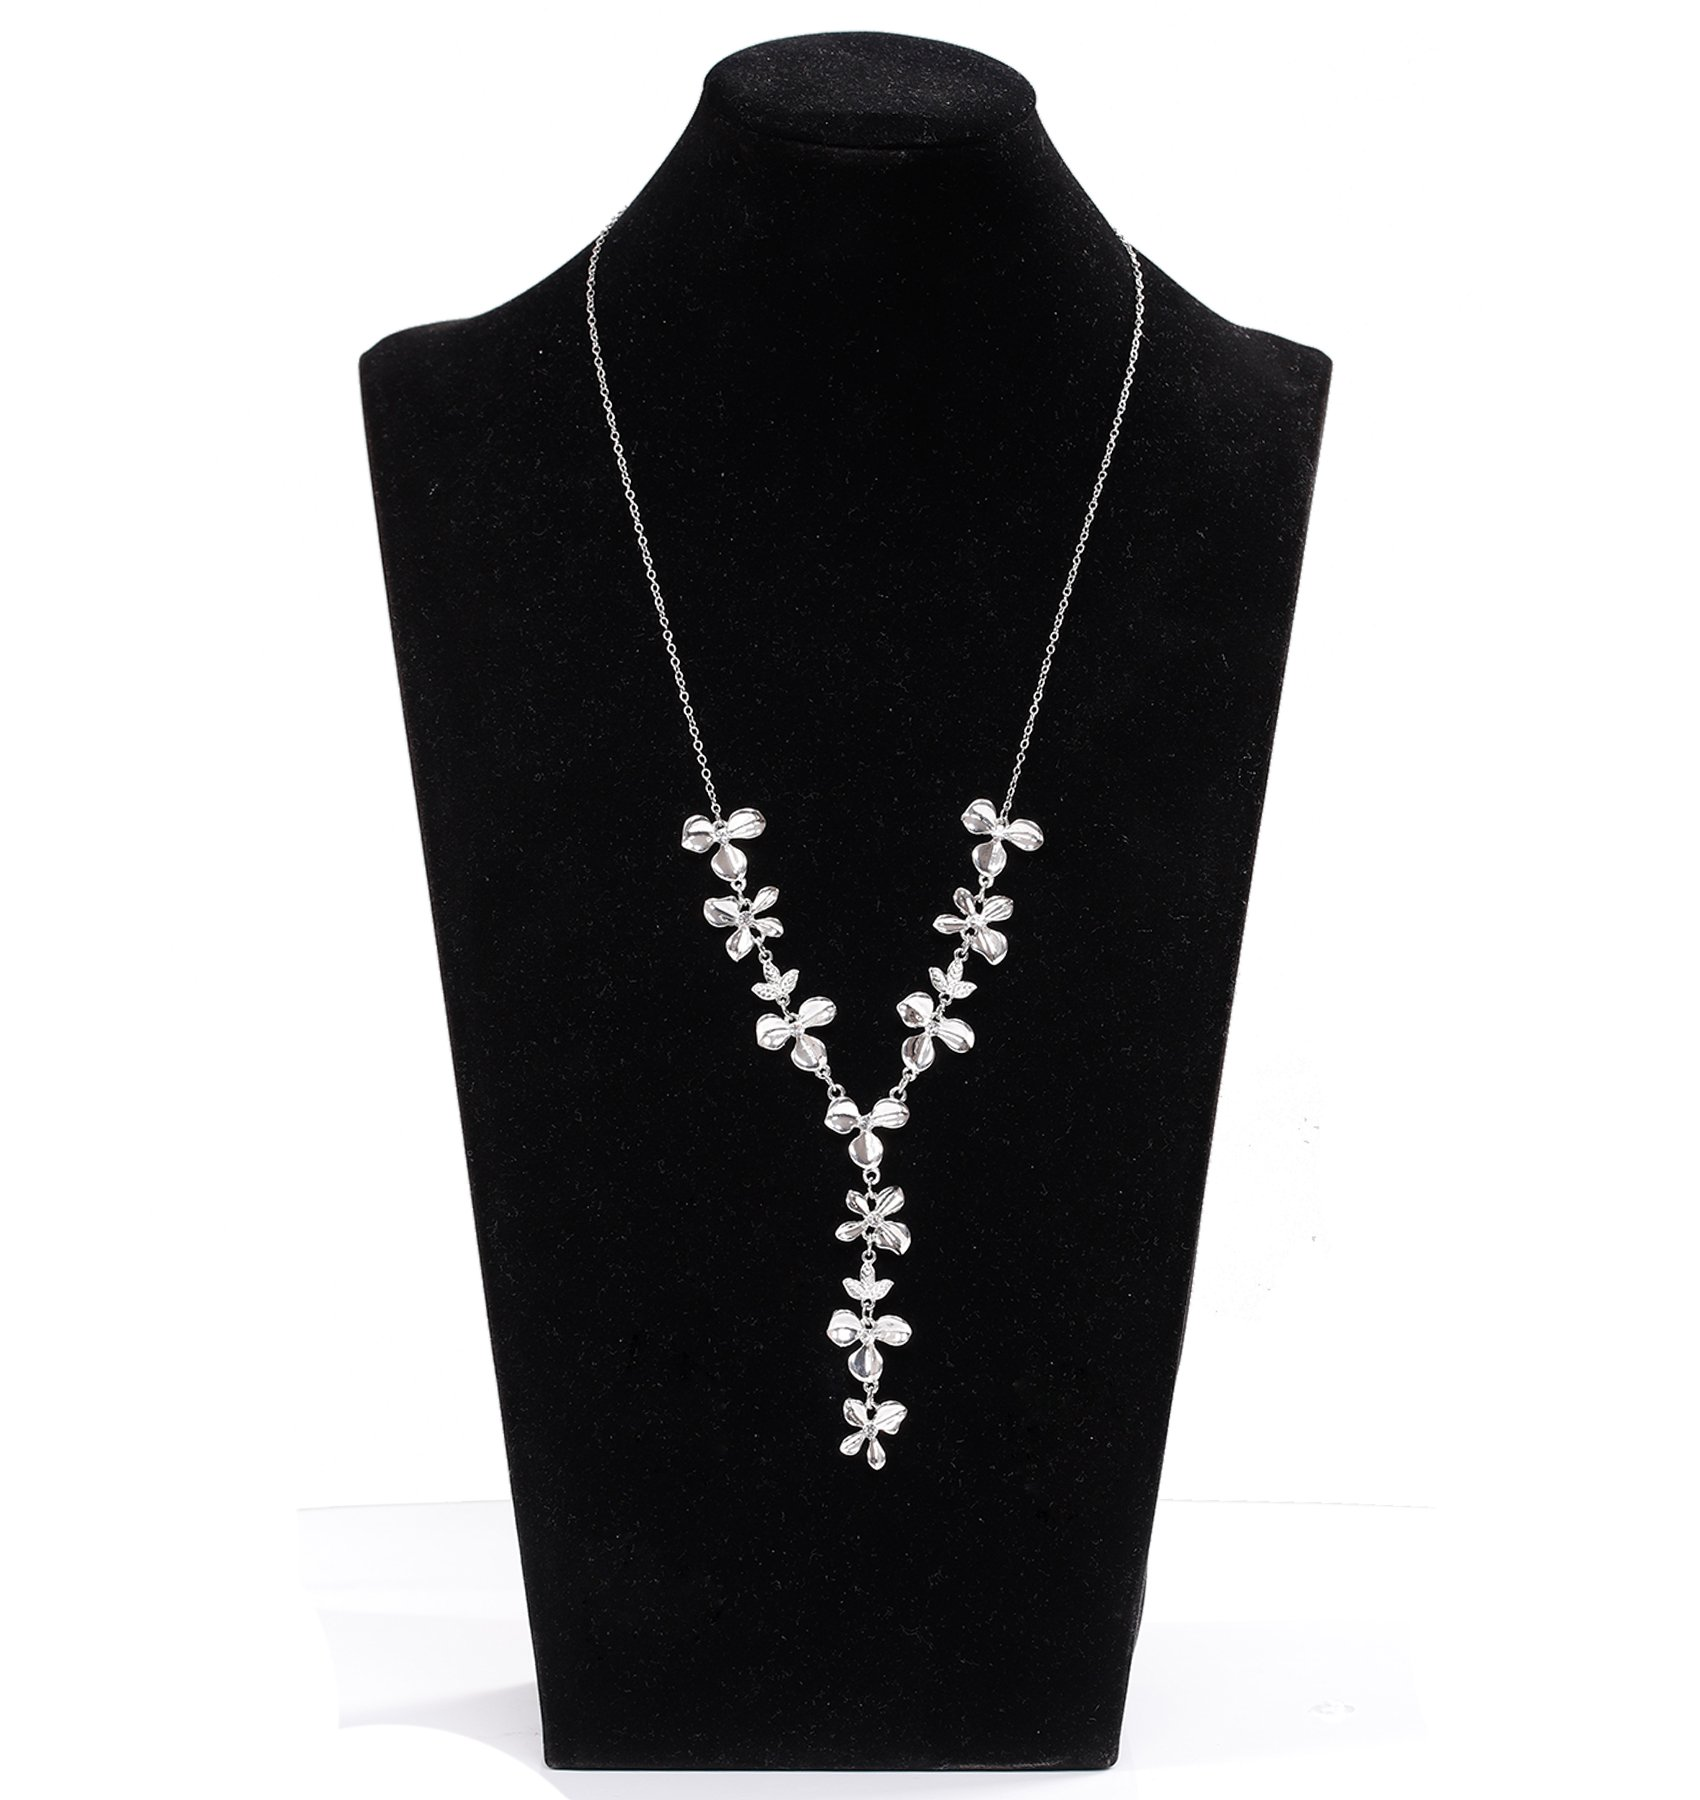 YOUMI Flower Leaf Y Shaped Long Necklace Adjustable Lariat Necklace Choker Statement Pendant for Women(Silver)